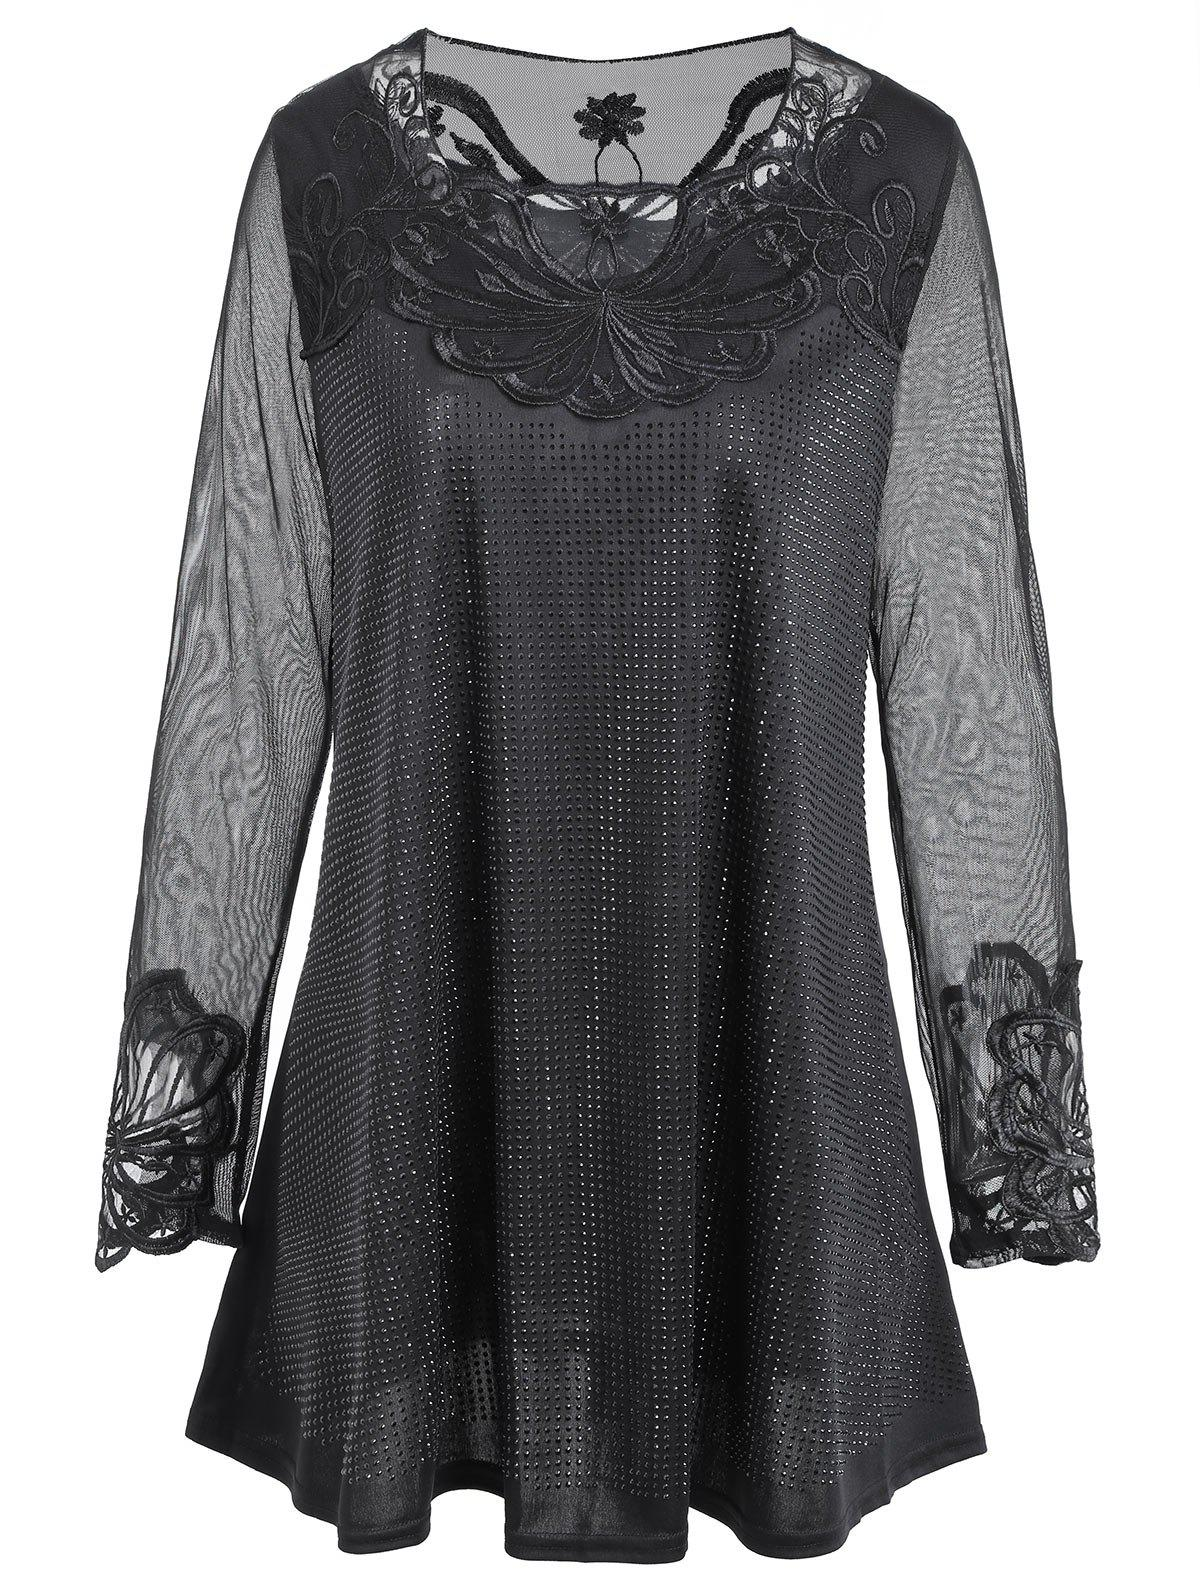 Plus Size Lace Mesh Panel Rhinestone BlouseWOMEN<br><br>Size: 5XL; Color: BLACK; Material: Cotton,Polyester; Shirt Length: Regular; Sleeve Length: Full; Collar: Round Neck; Style: Fashion; Season: Fall,Spring; Embellishment: Lace,Rhinestone,See Thru; Pattern Type: Solid; Weight: 0.3400kg; Package Contents: 1 x Blouse;